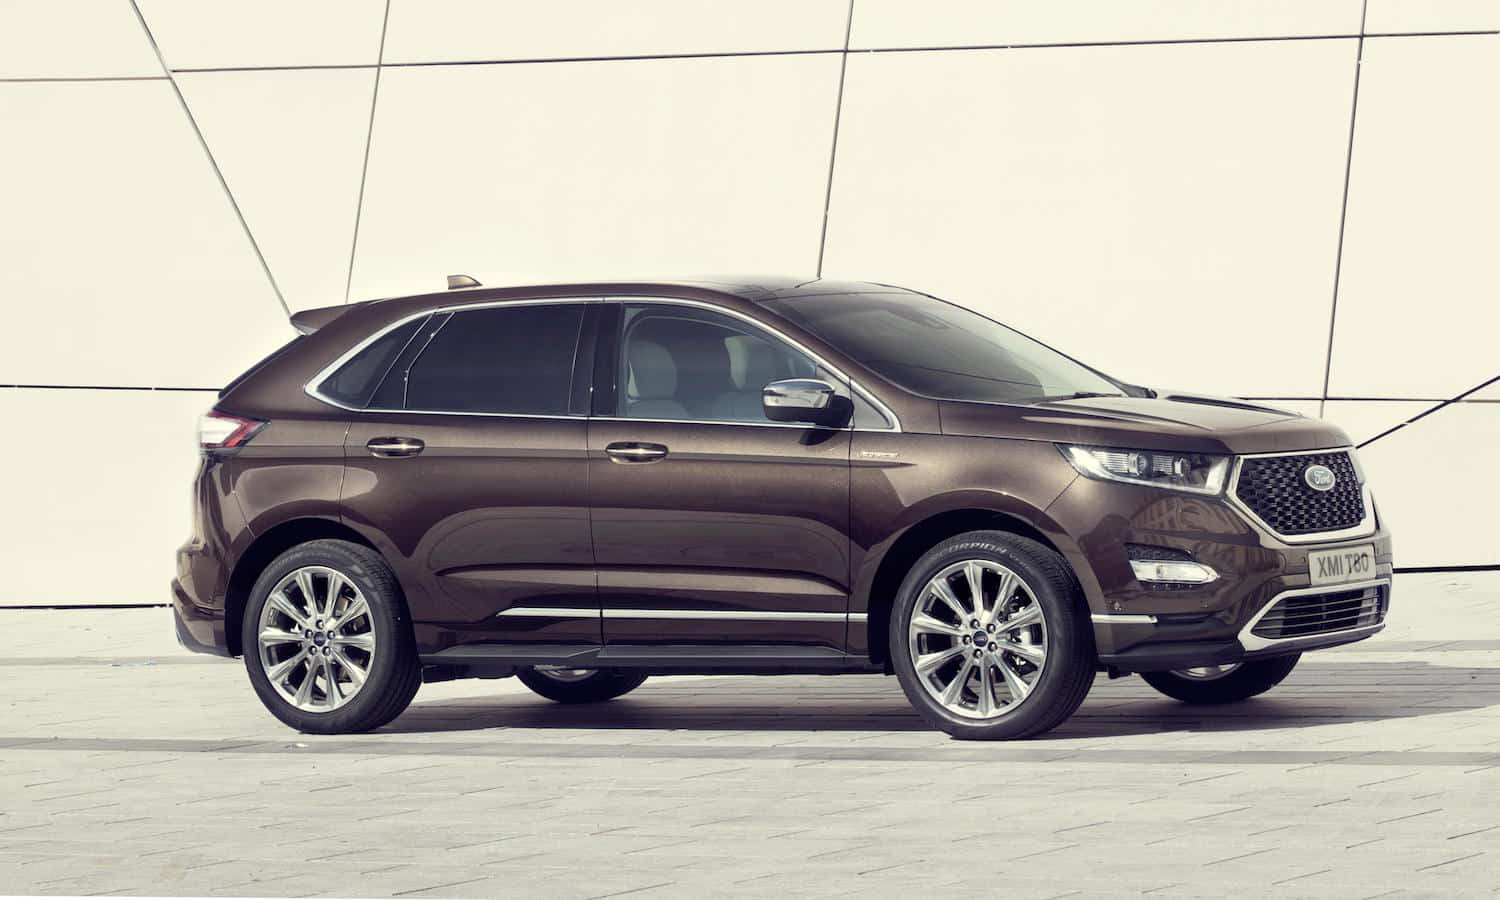 Ford Expands Vignale Range To Kuga And Edge Suvs The Car